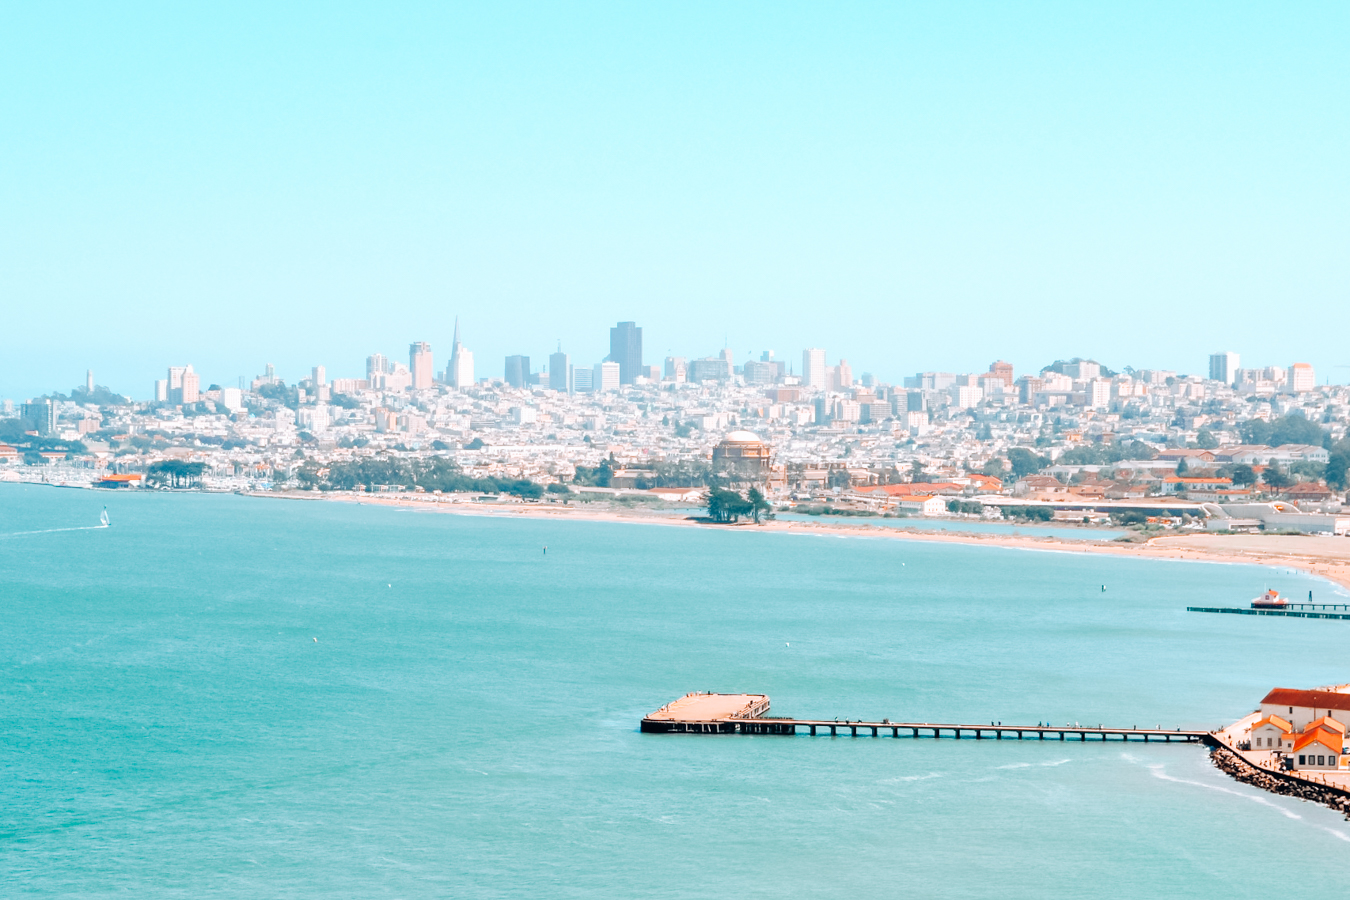 View of San Francisco and water